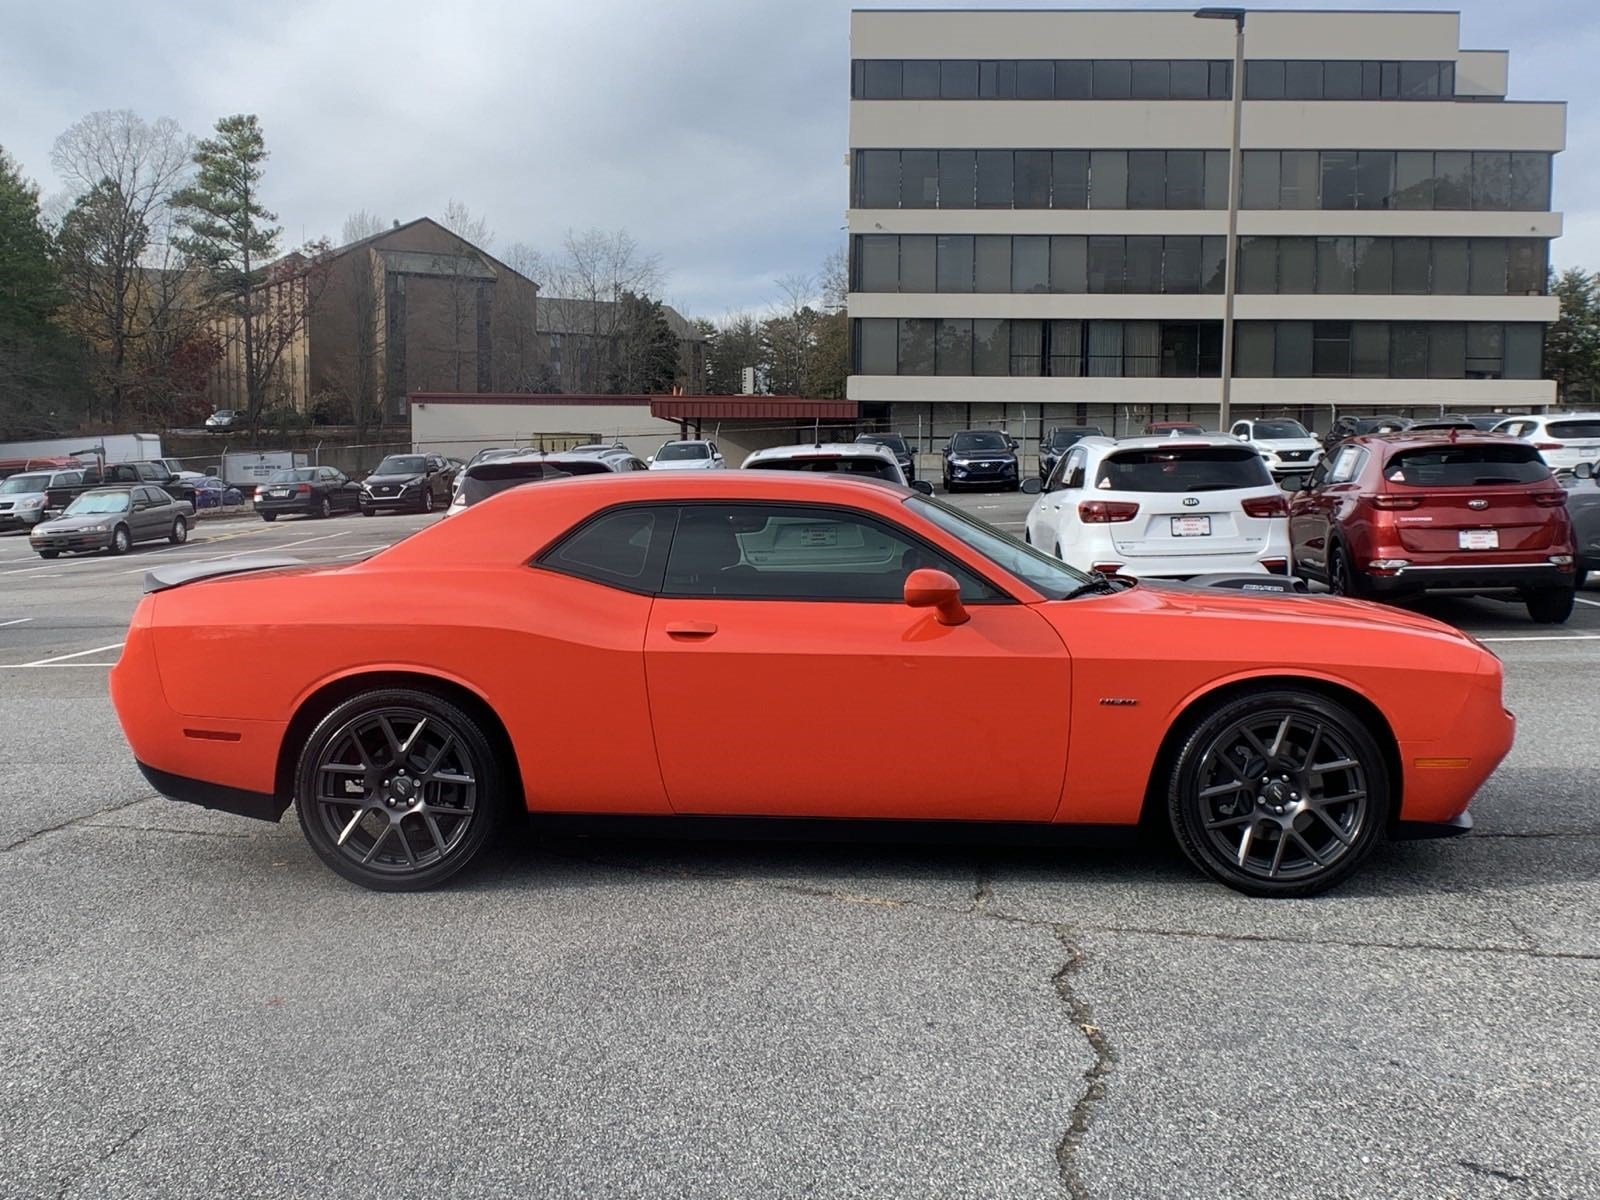 Ed Voyles Dodge >> Pre-Owned 2018 Dodge Challenger R/T Shaker 2dr Car in Smyrna #287009A | Ed Voyles Kia